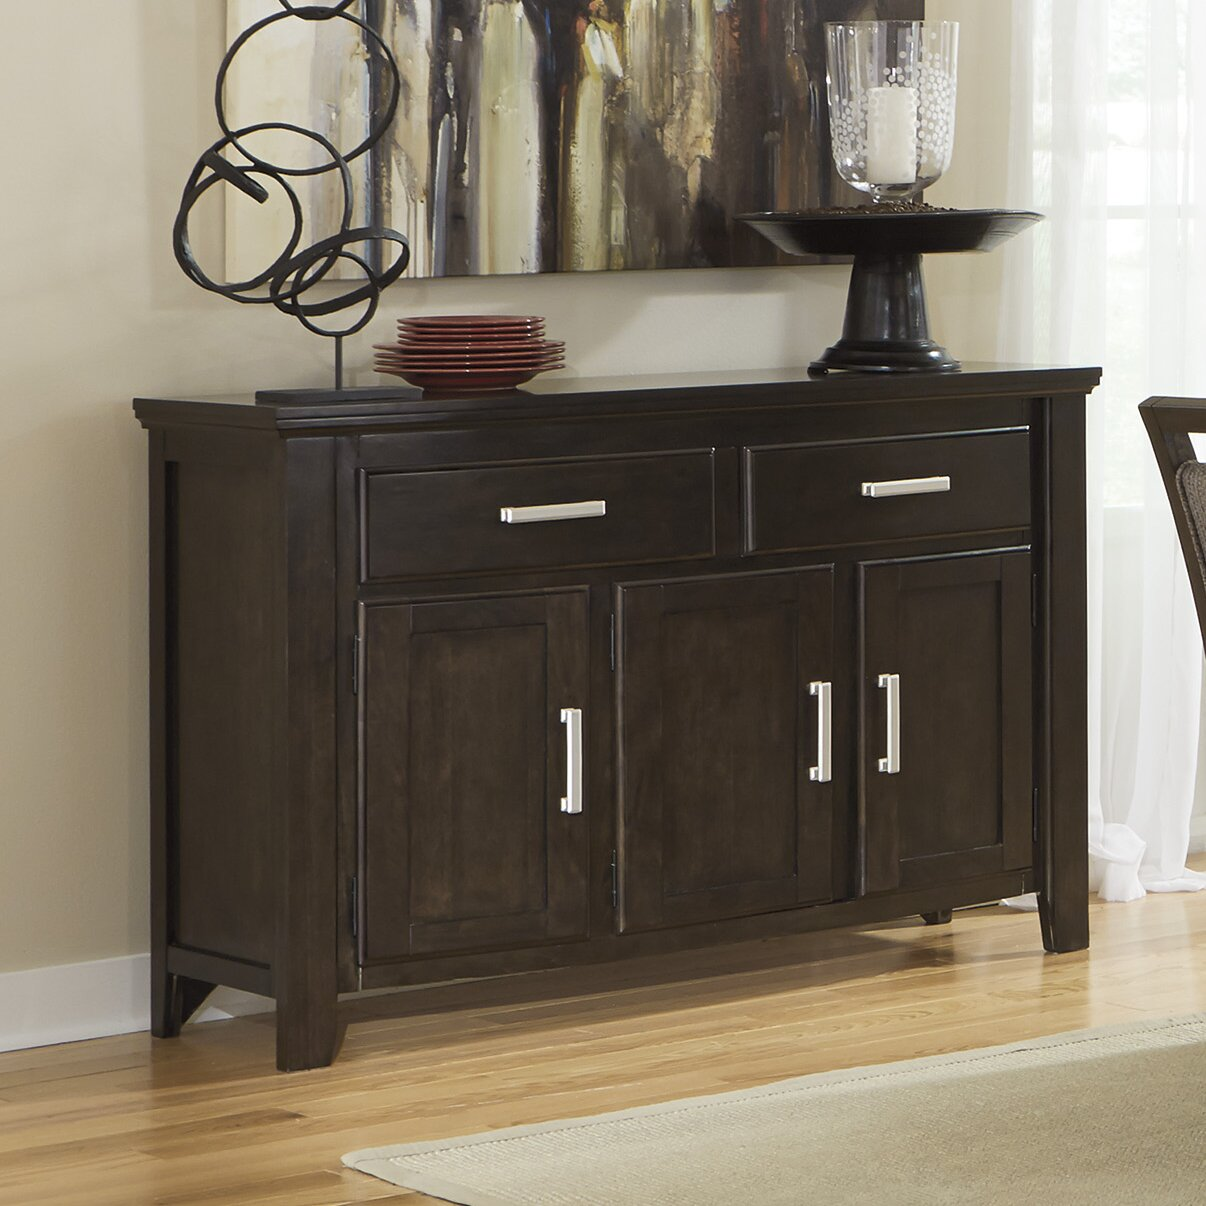 Dining Room Side Board: Signature Design By Ashley Lanquist Dining Room Sideboard